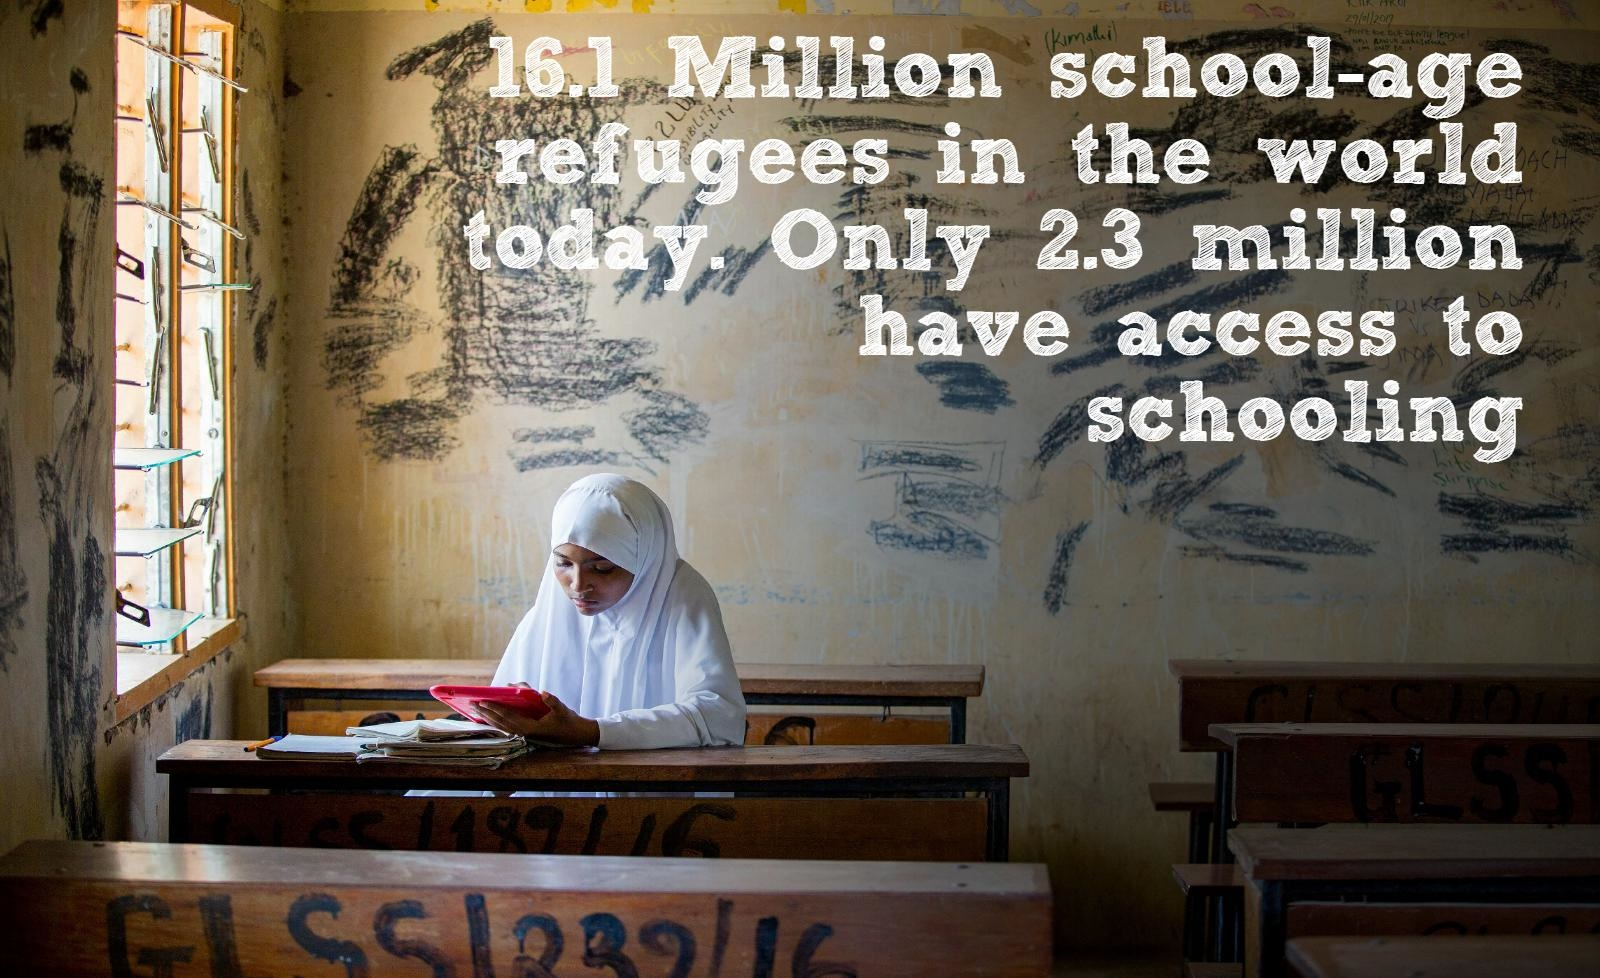 Of the 16.1 million school age refugees across the world, only 2.3 million have access to schooling.